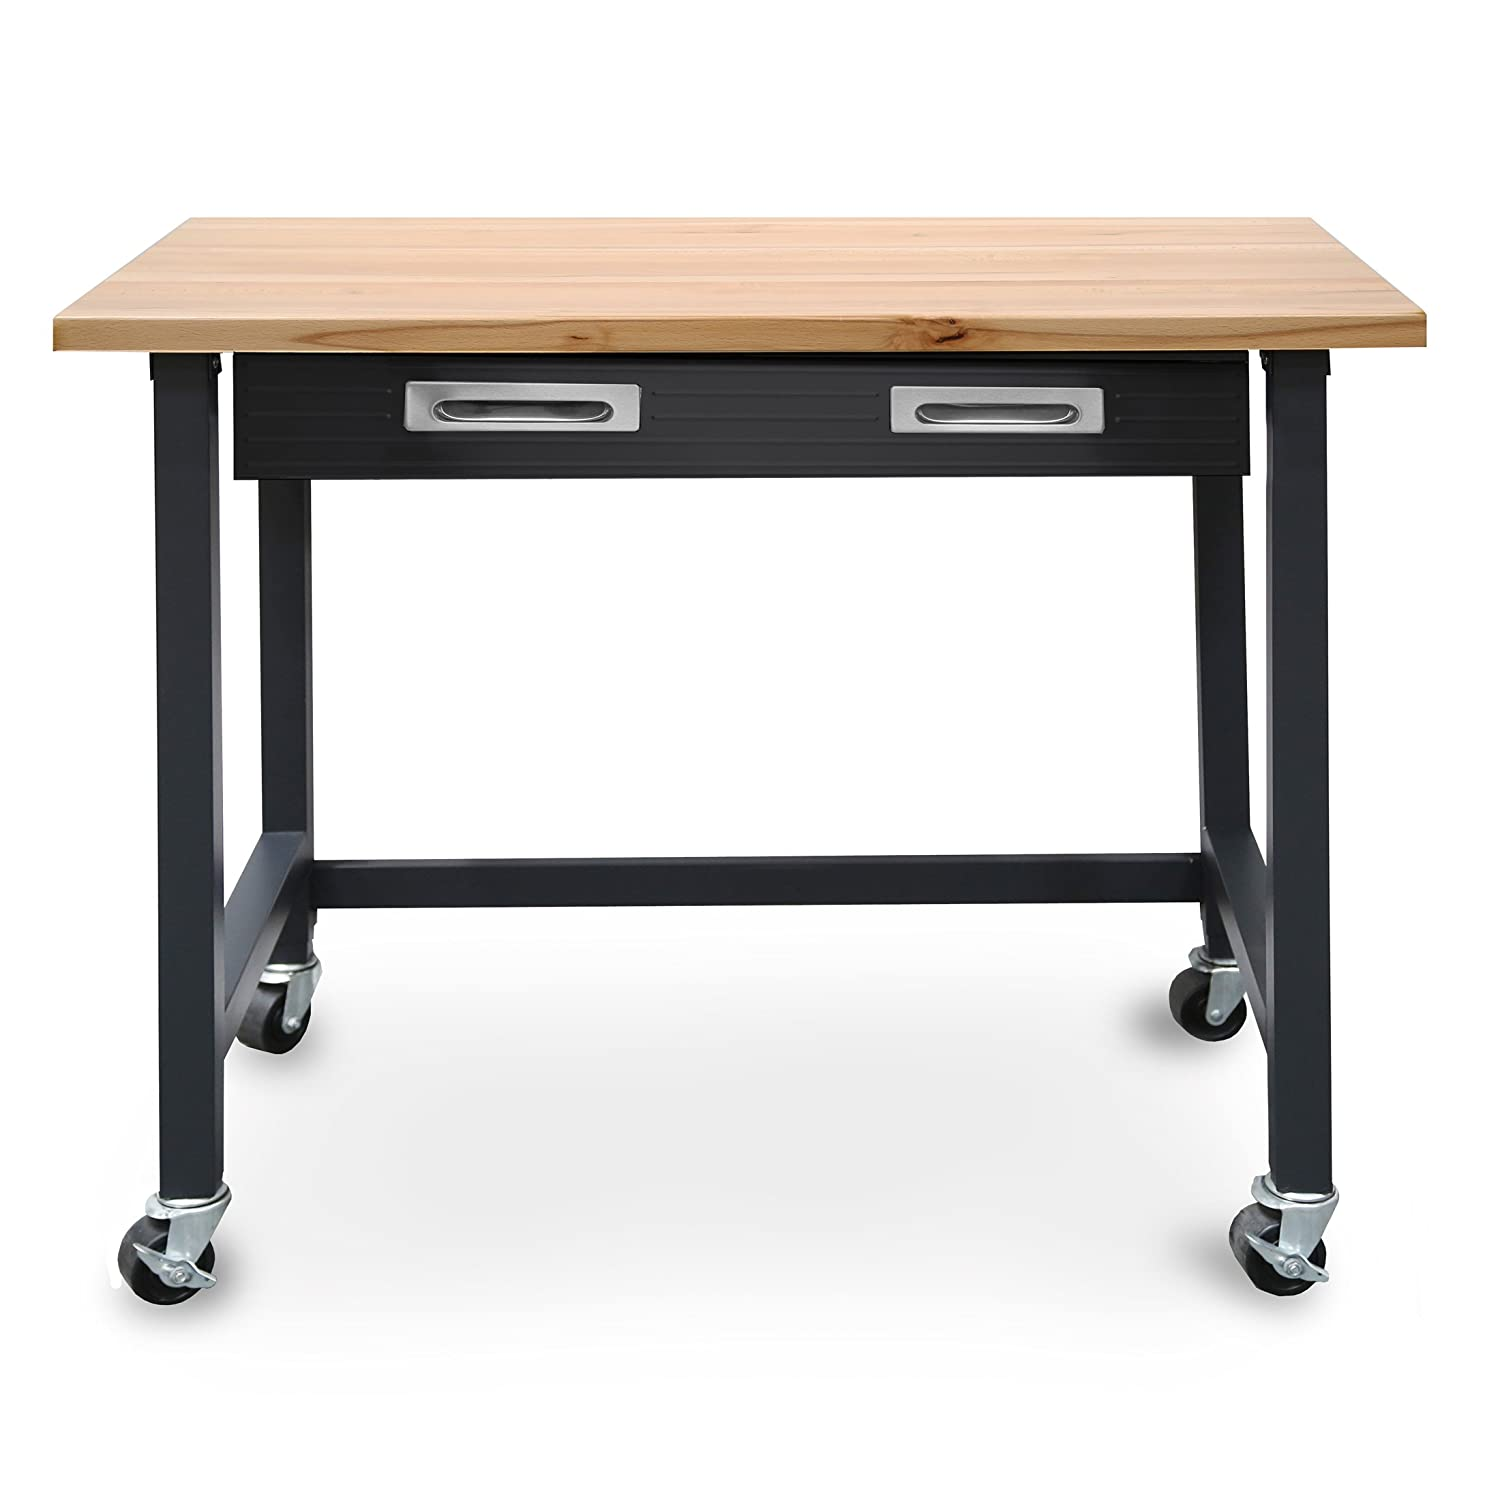 Seville Classics UltraGraphite Workbench